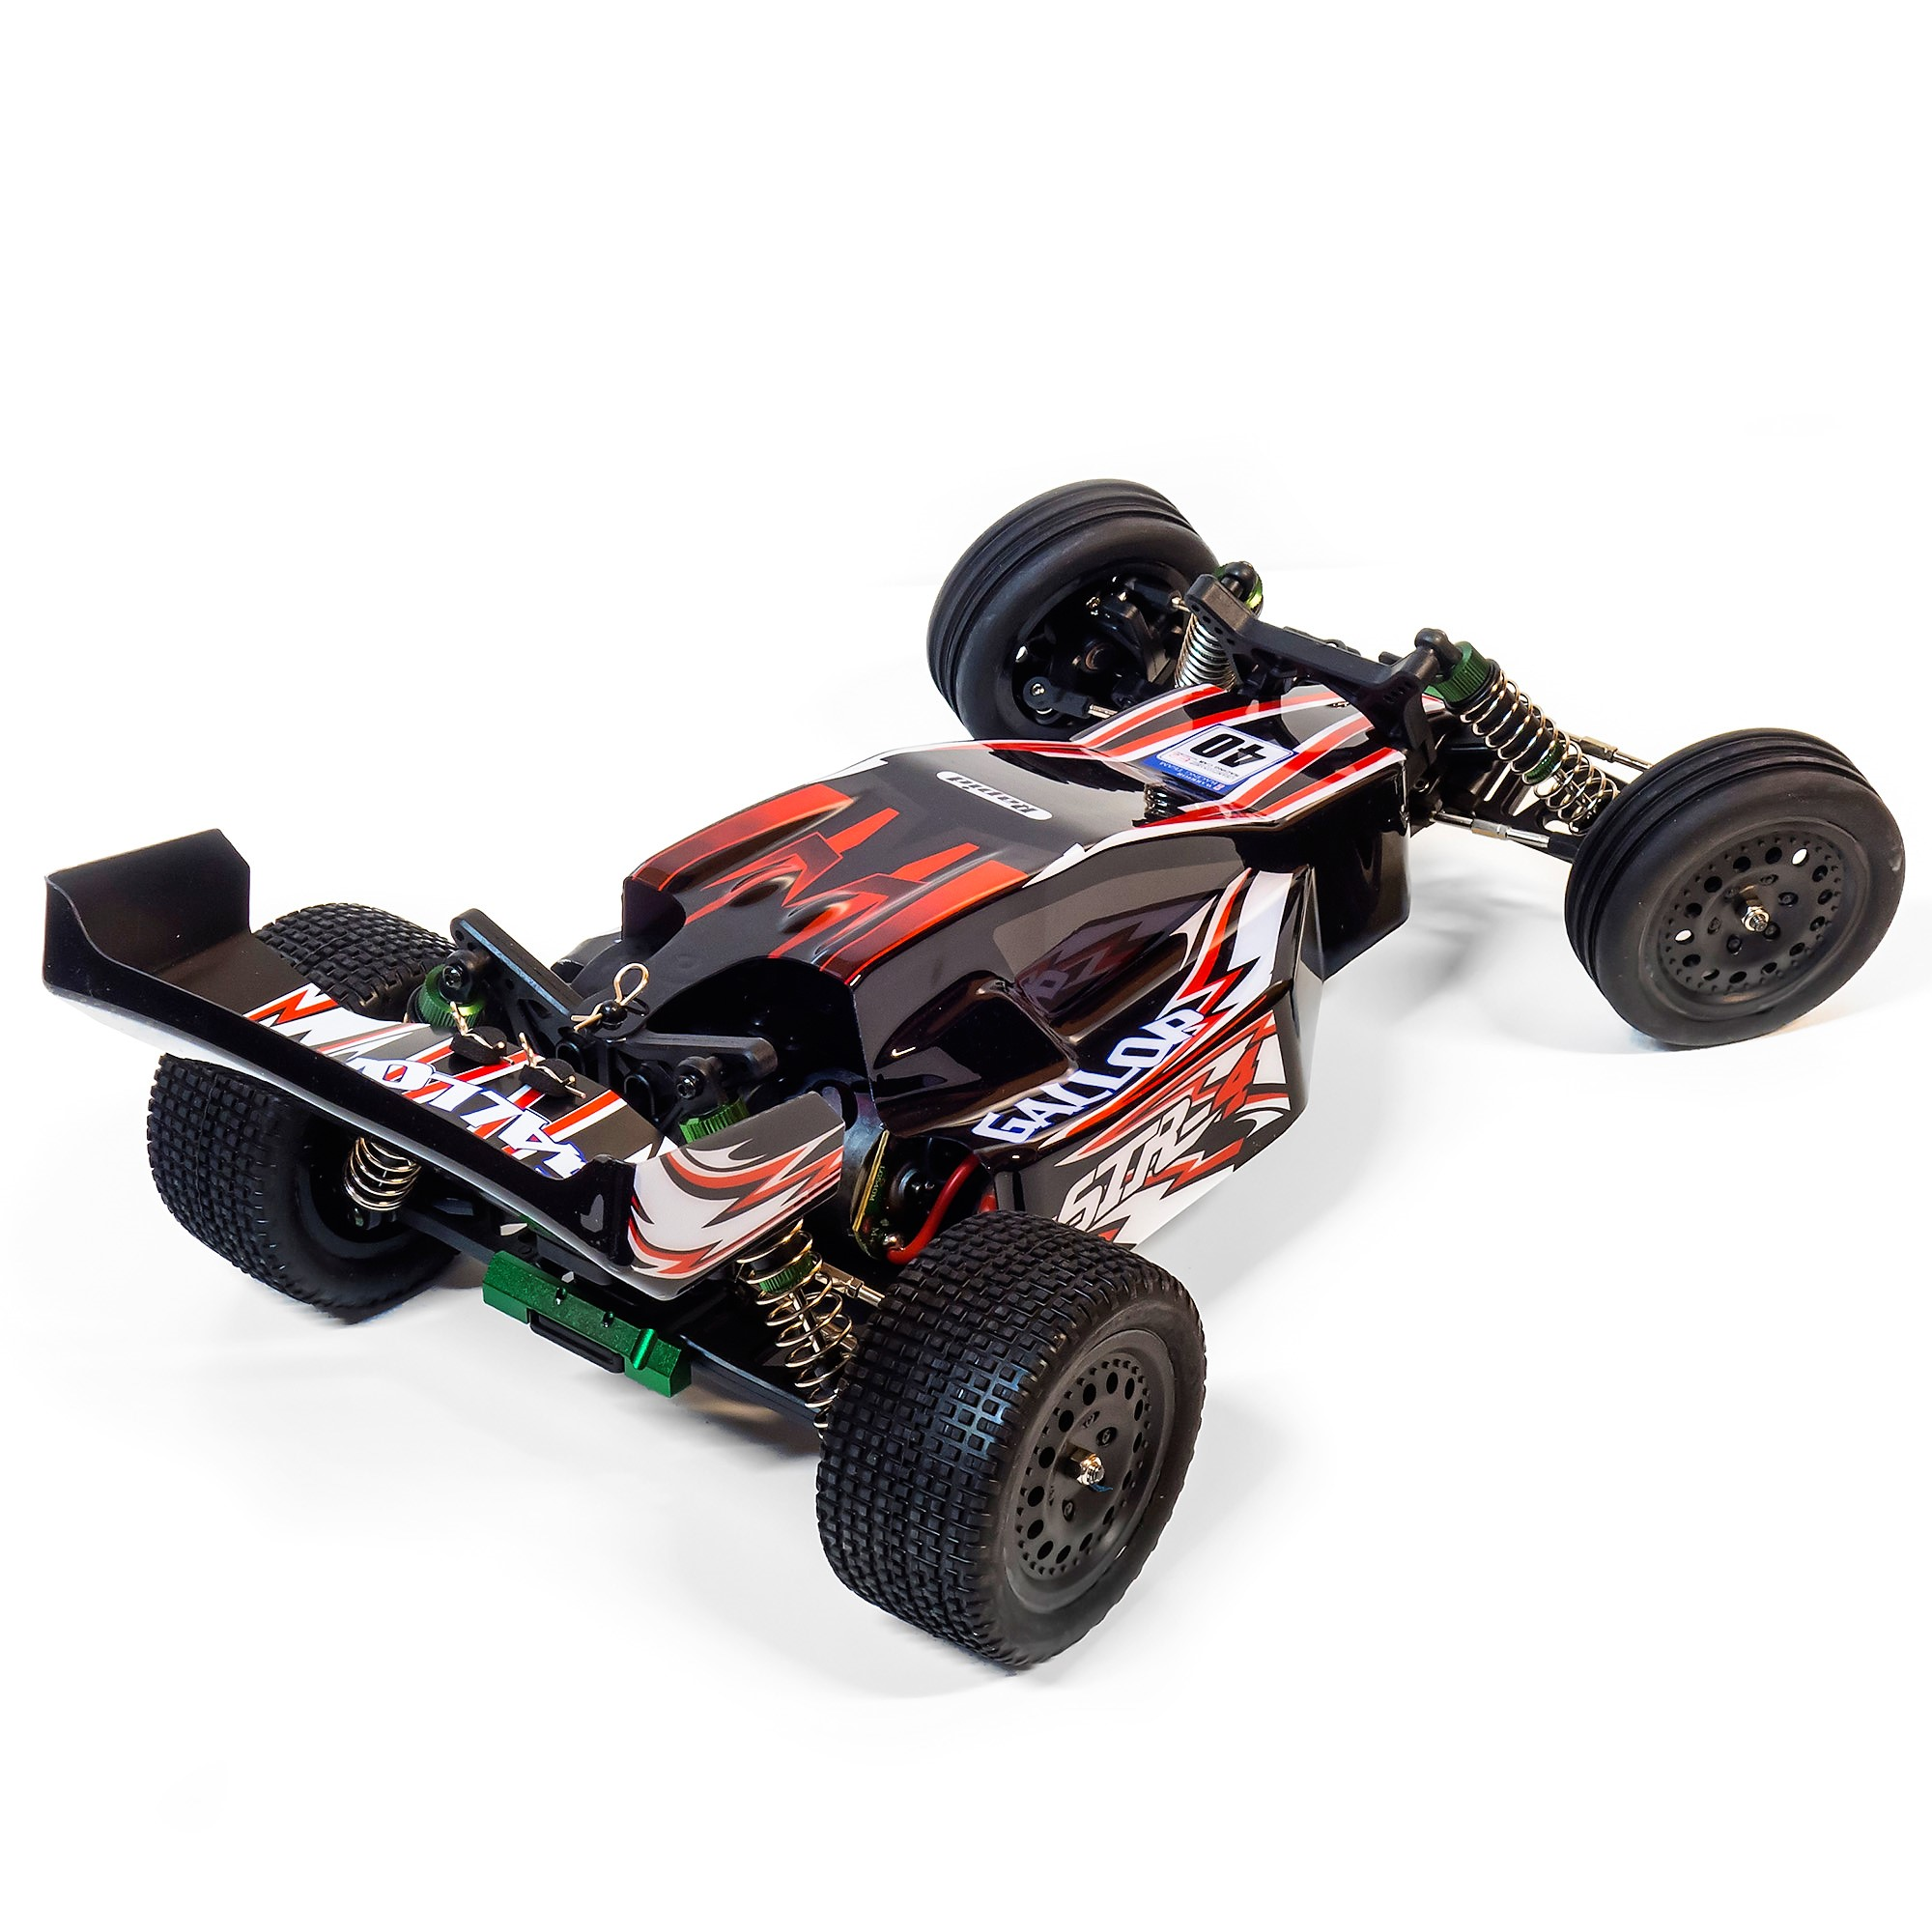 ferngesteuerte rc auto spielzeug rayline funrace buggy bis. Black Bedroom Furniture Sets. Home Design Ideas